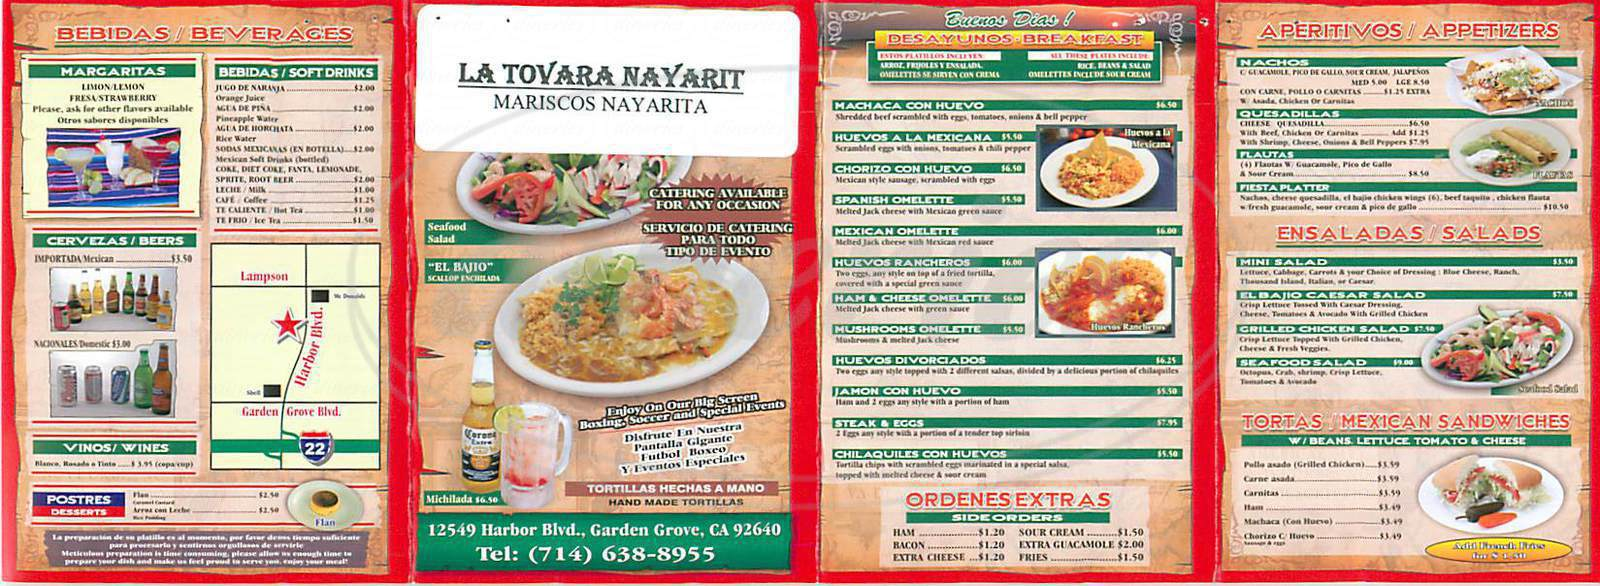 menu for La Tovara Nayarit